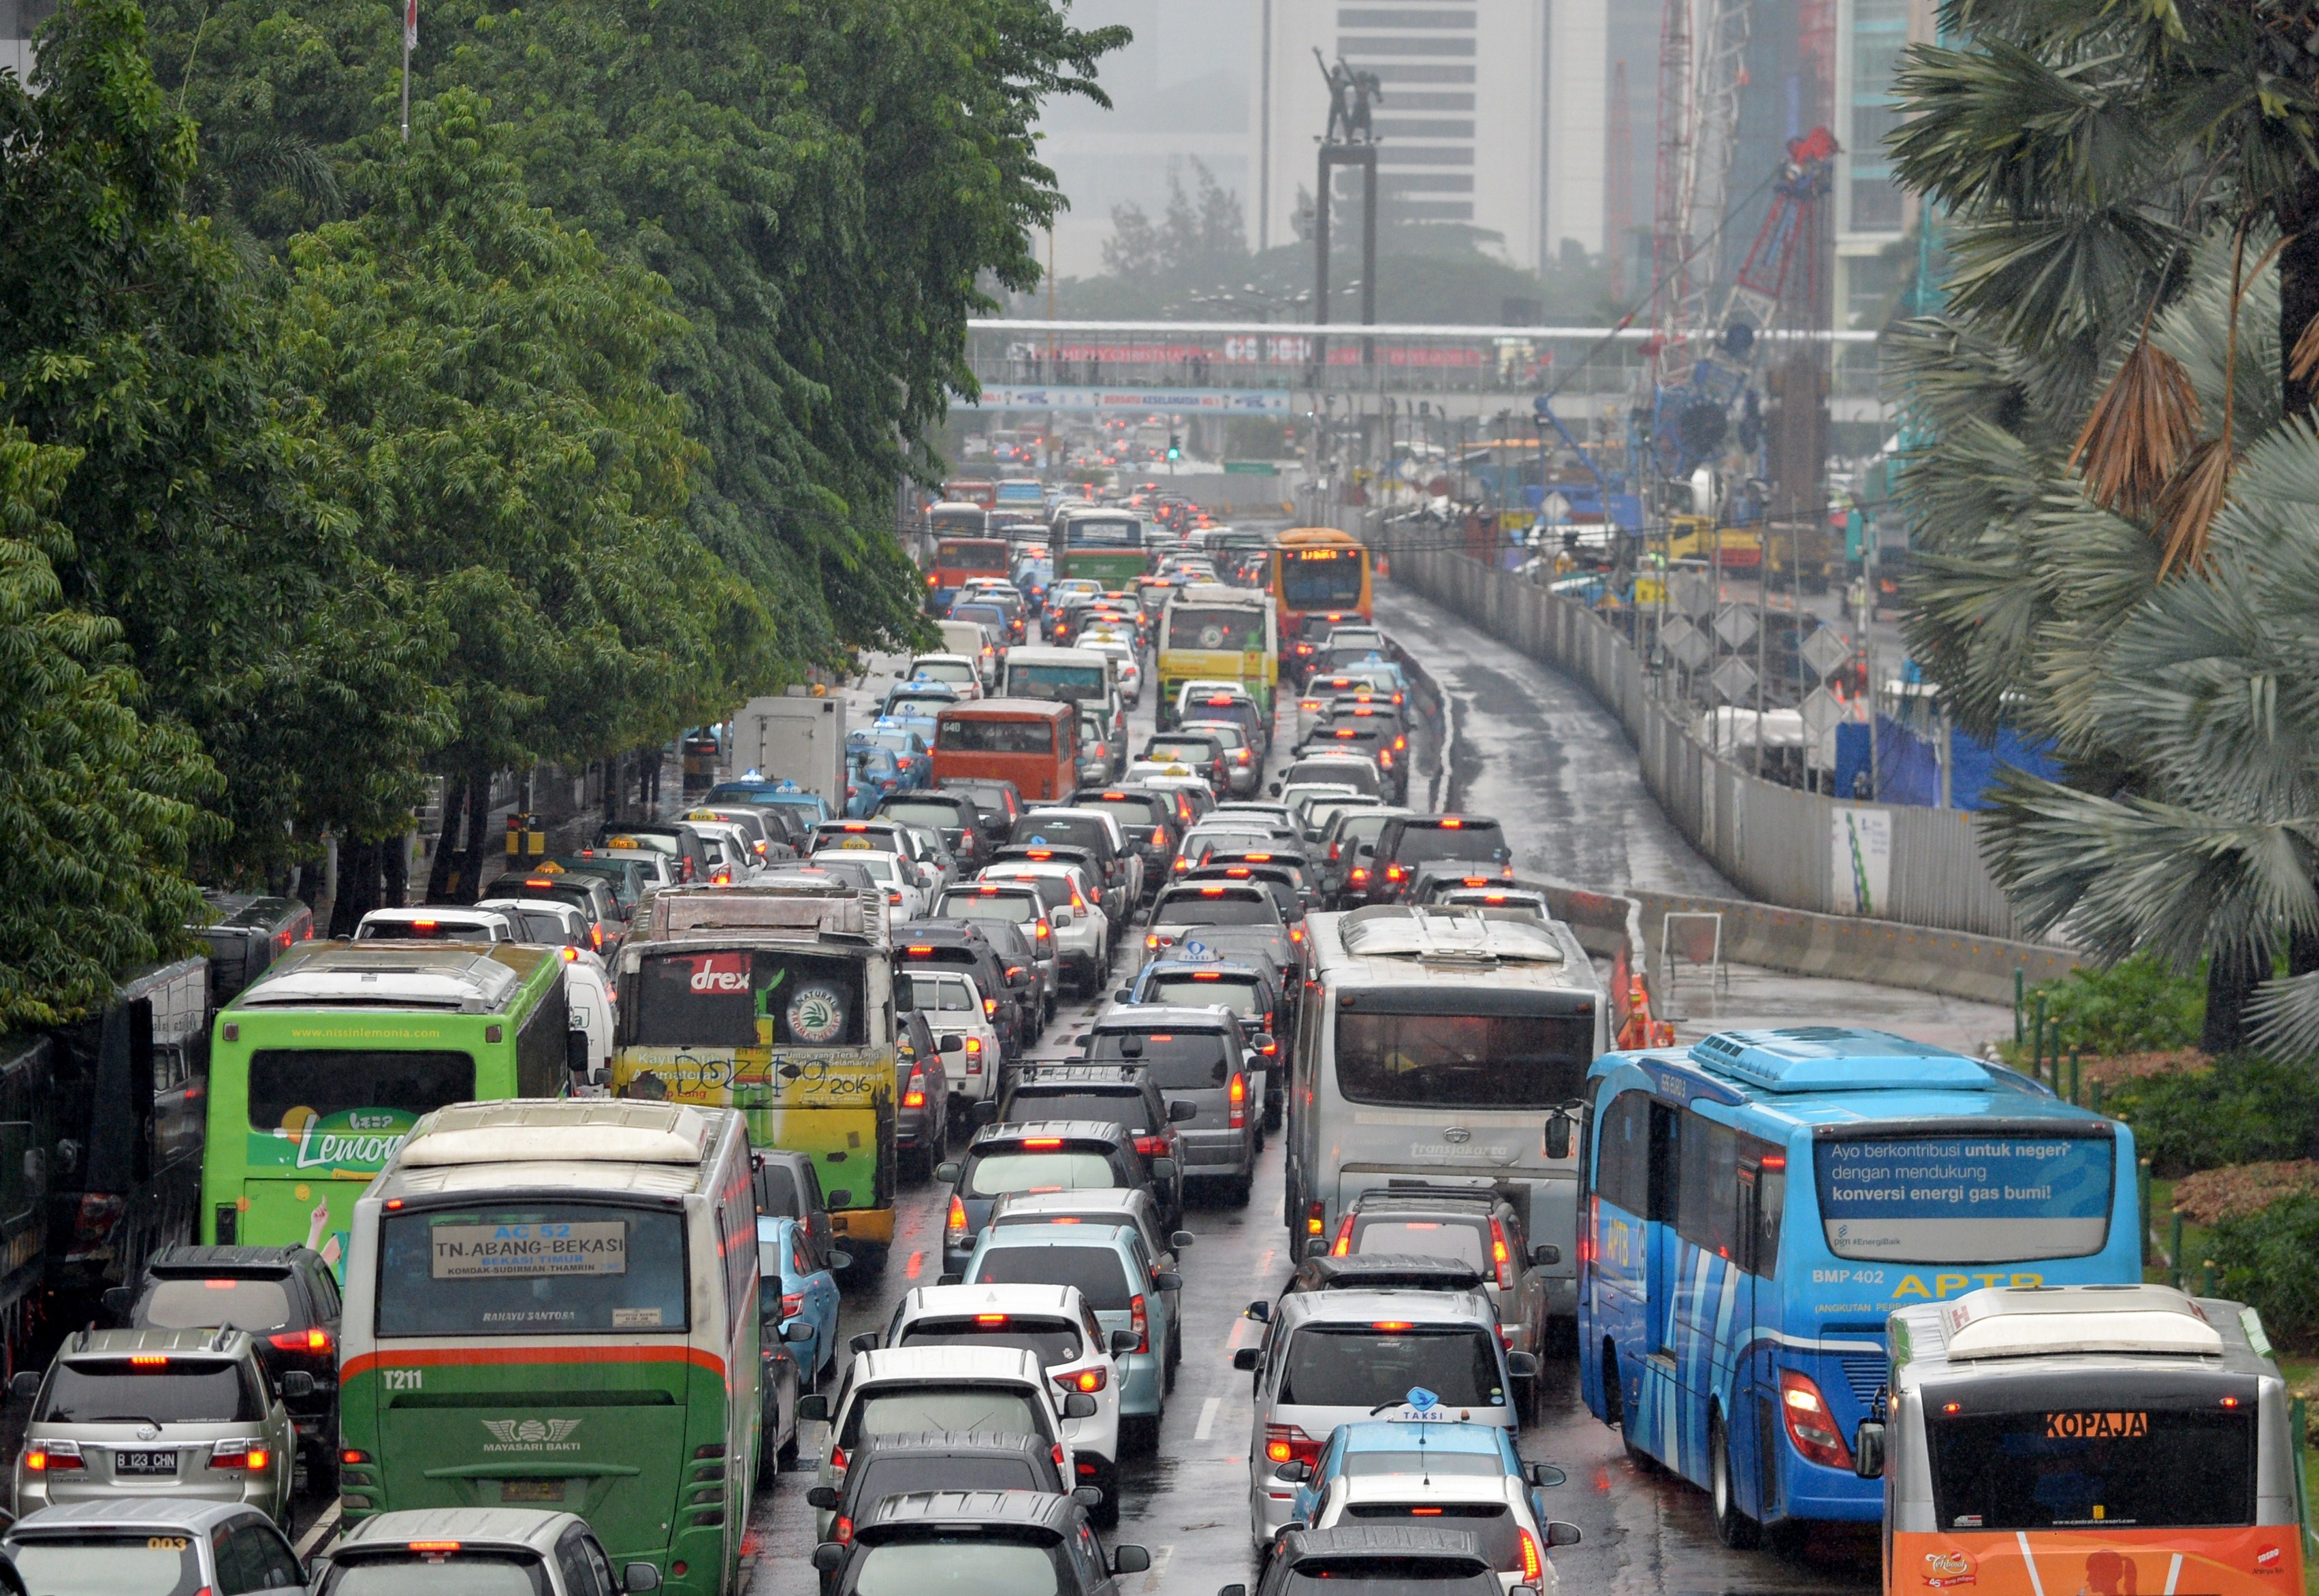 This picture taken on January 20, 2015 shows a gridlock in Jakarta's main road. Jakarta has just won the distinction of having the worlds worst traffic, according to a recent index.